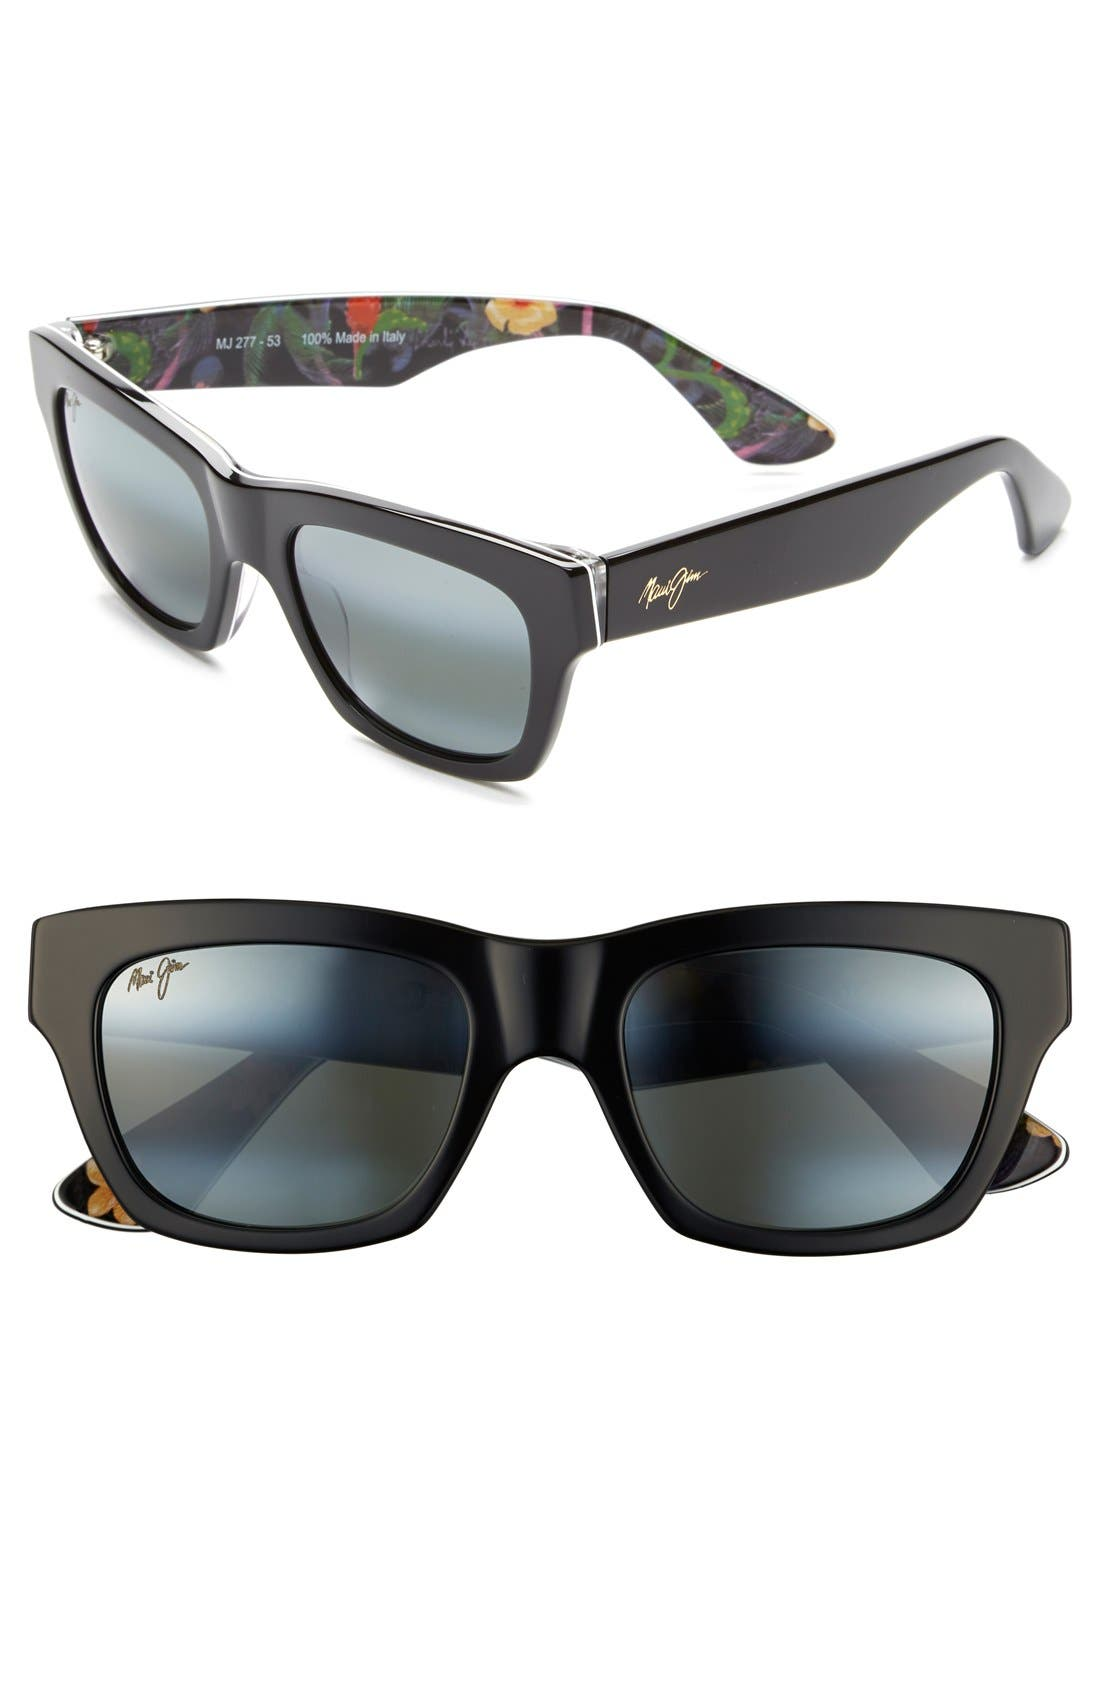 Maui Jim You Move Me 52mm PolarizedPlus2® Sunglasses